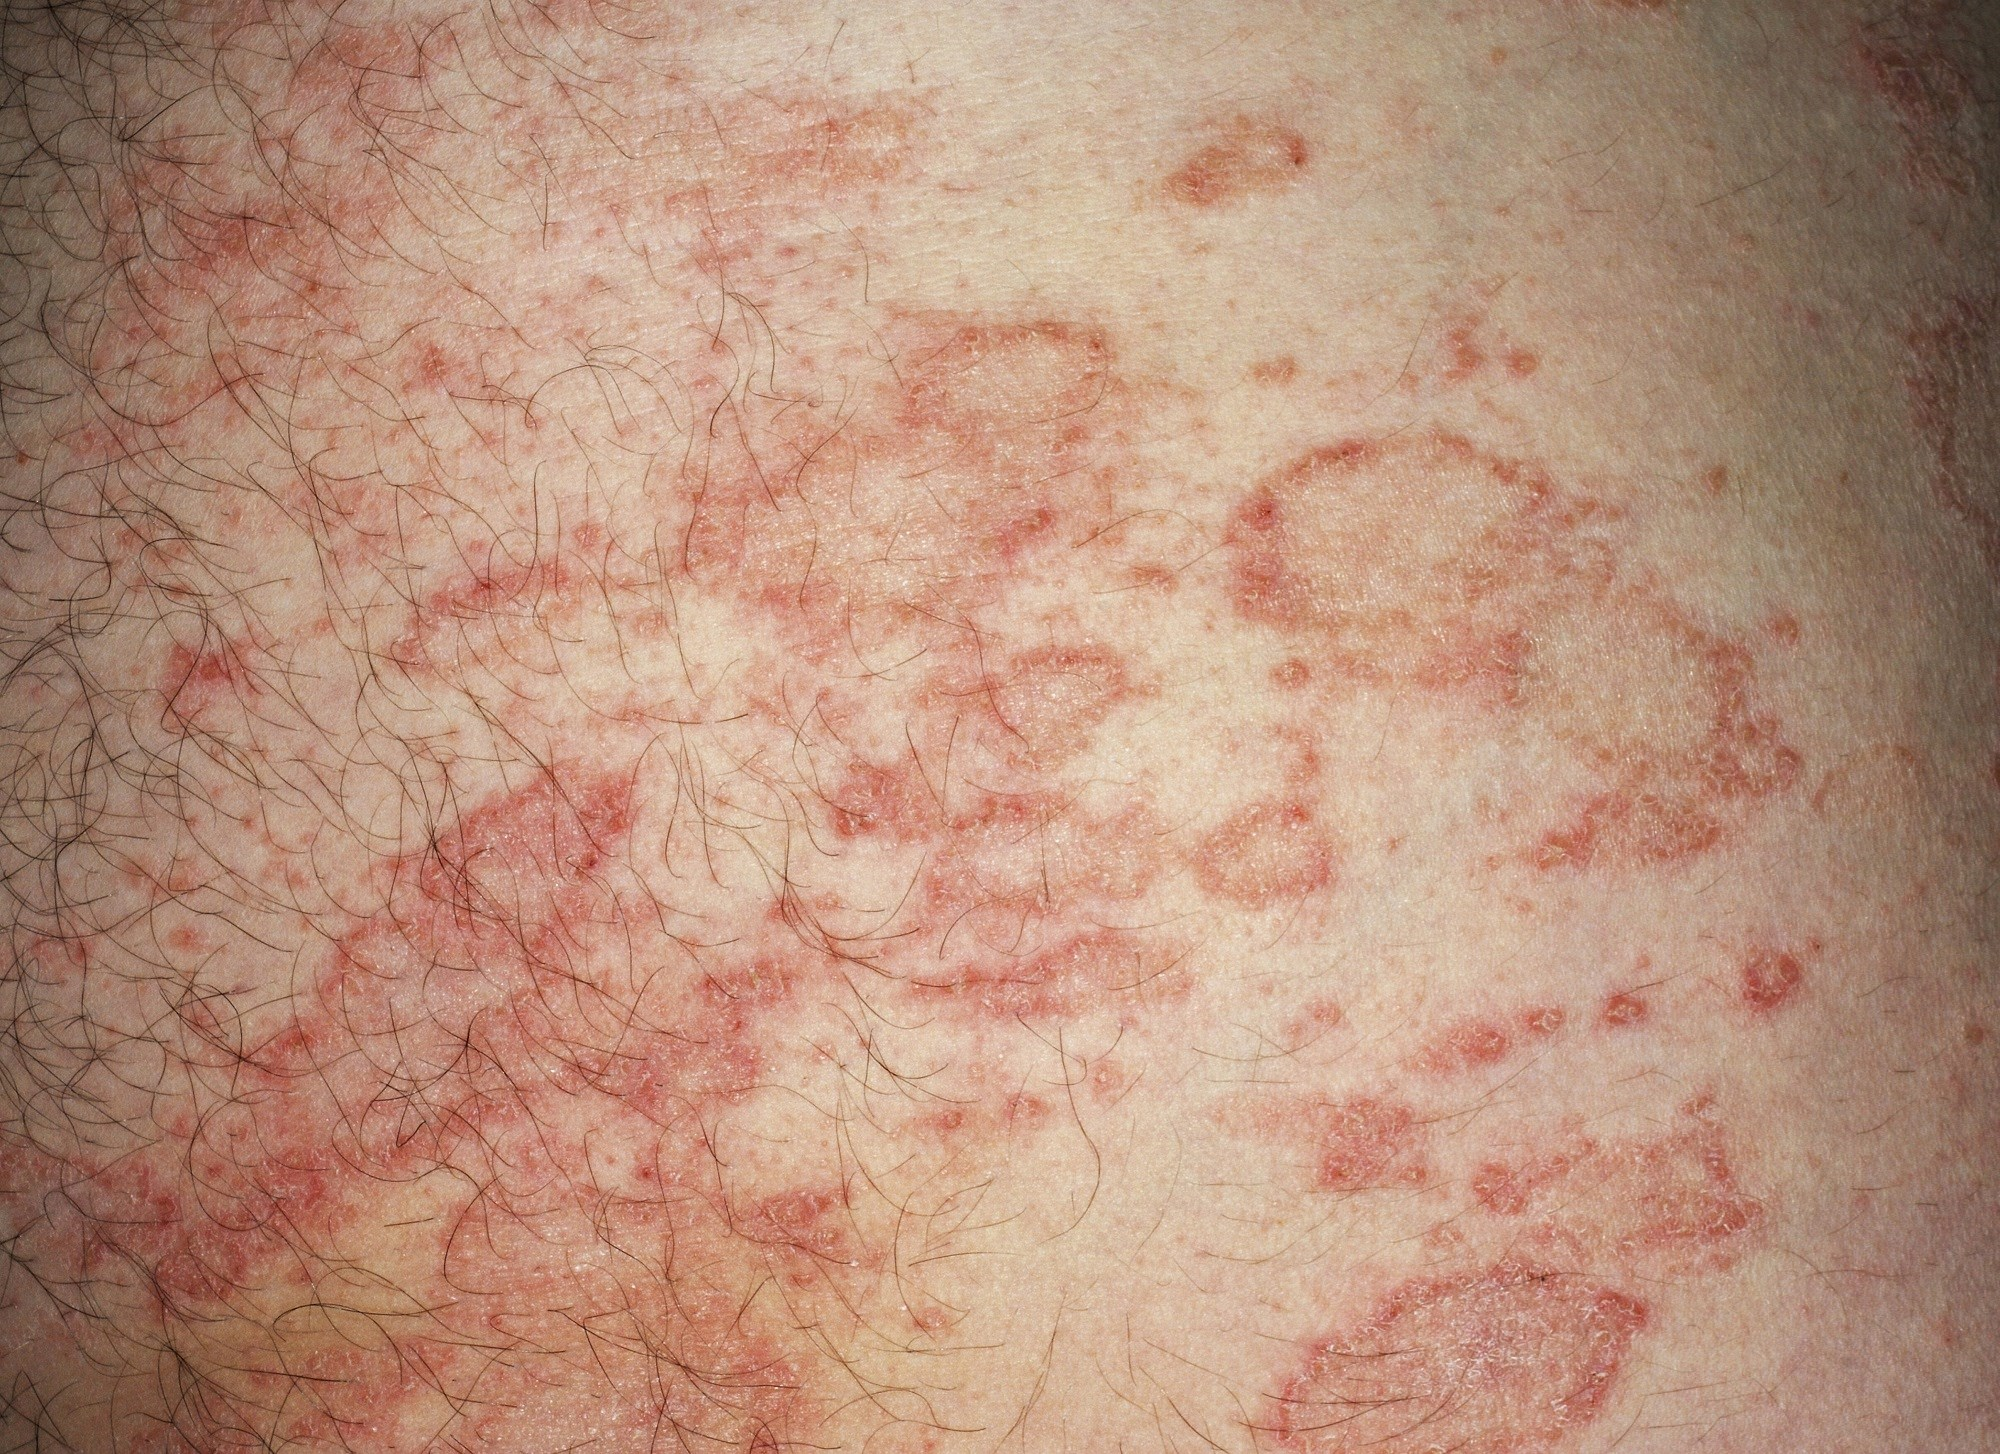 Baricitinib Beneficial in Two Phase 3 Atopic Dermatitis Trials